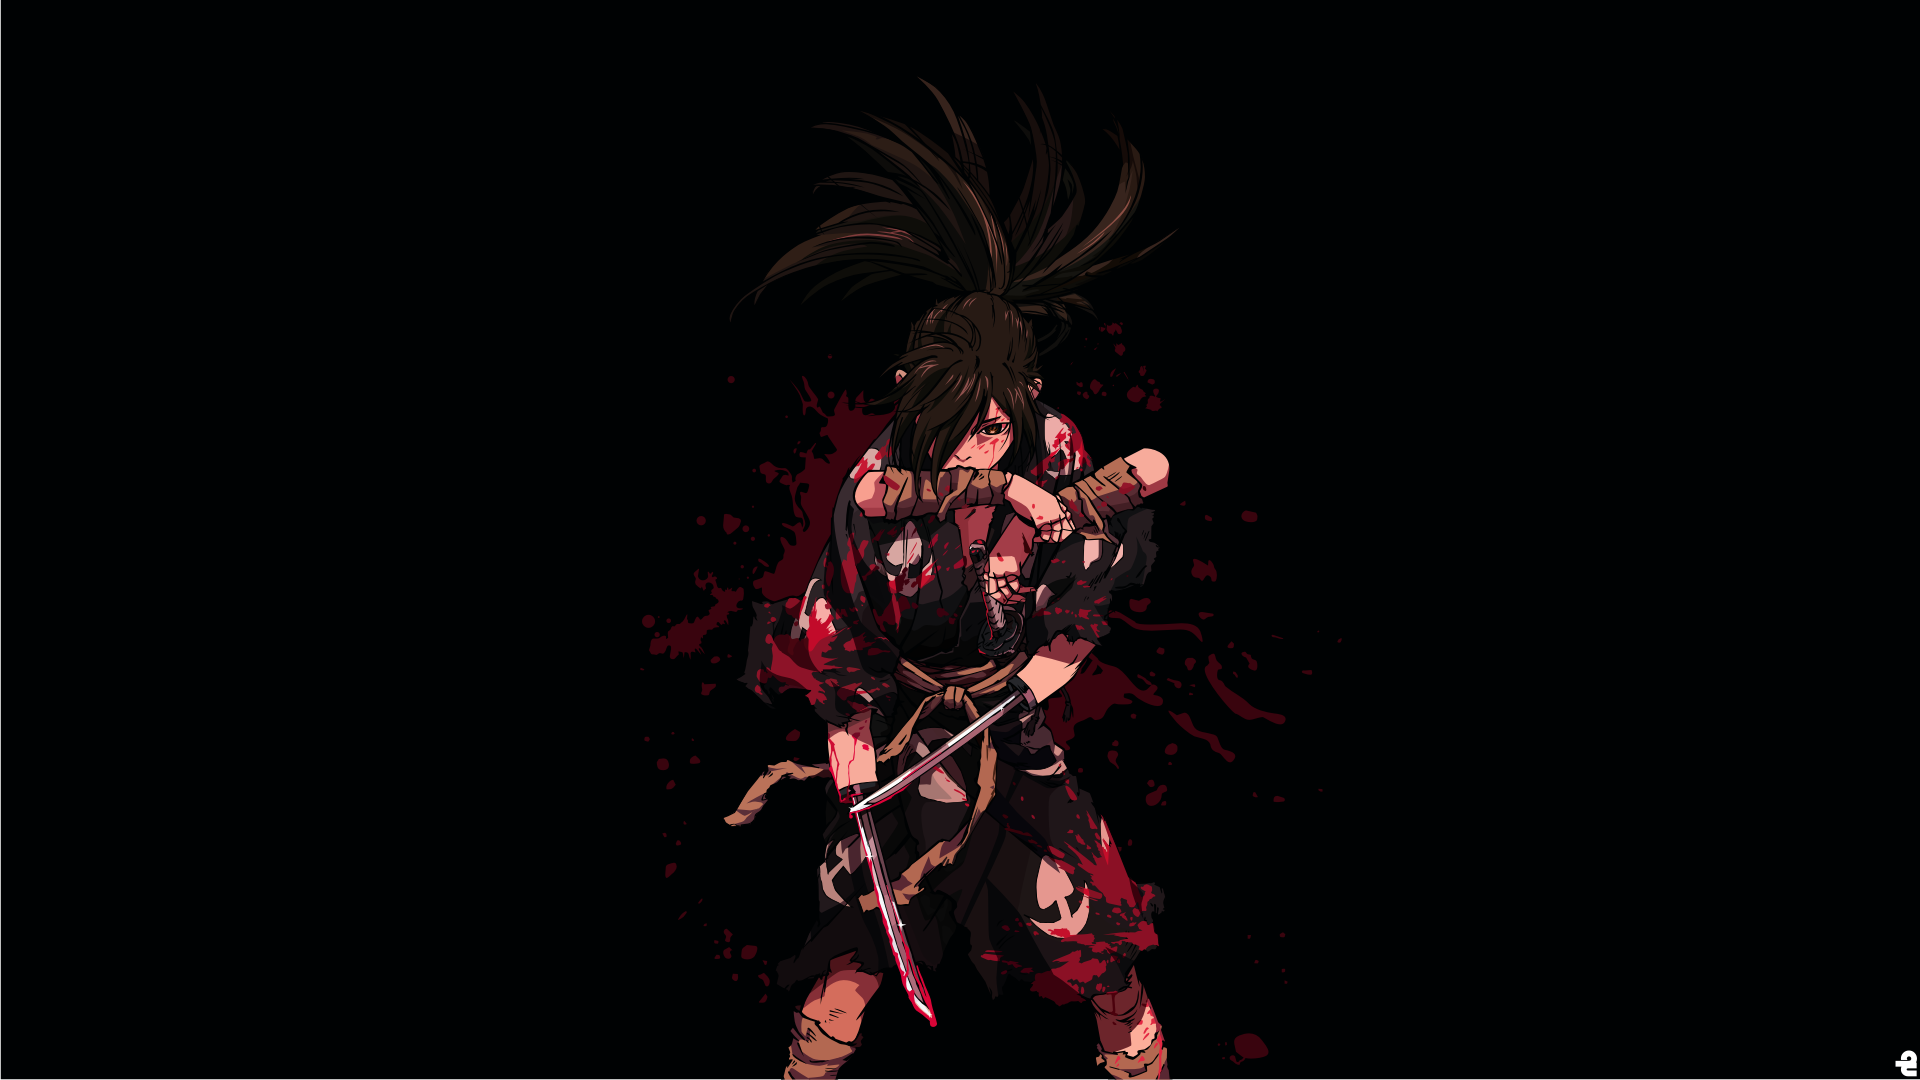 176 Dororo Hd Wallpapers Background Images Wallpaper Abyss